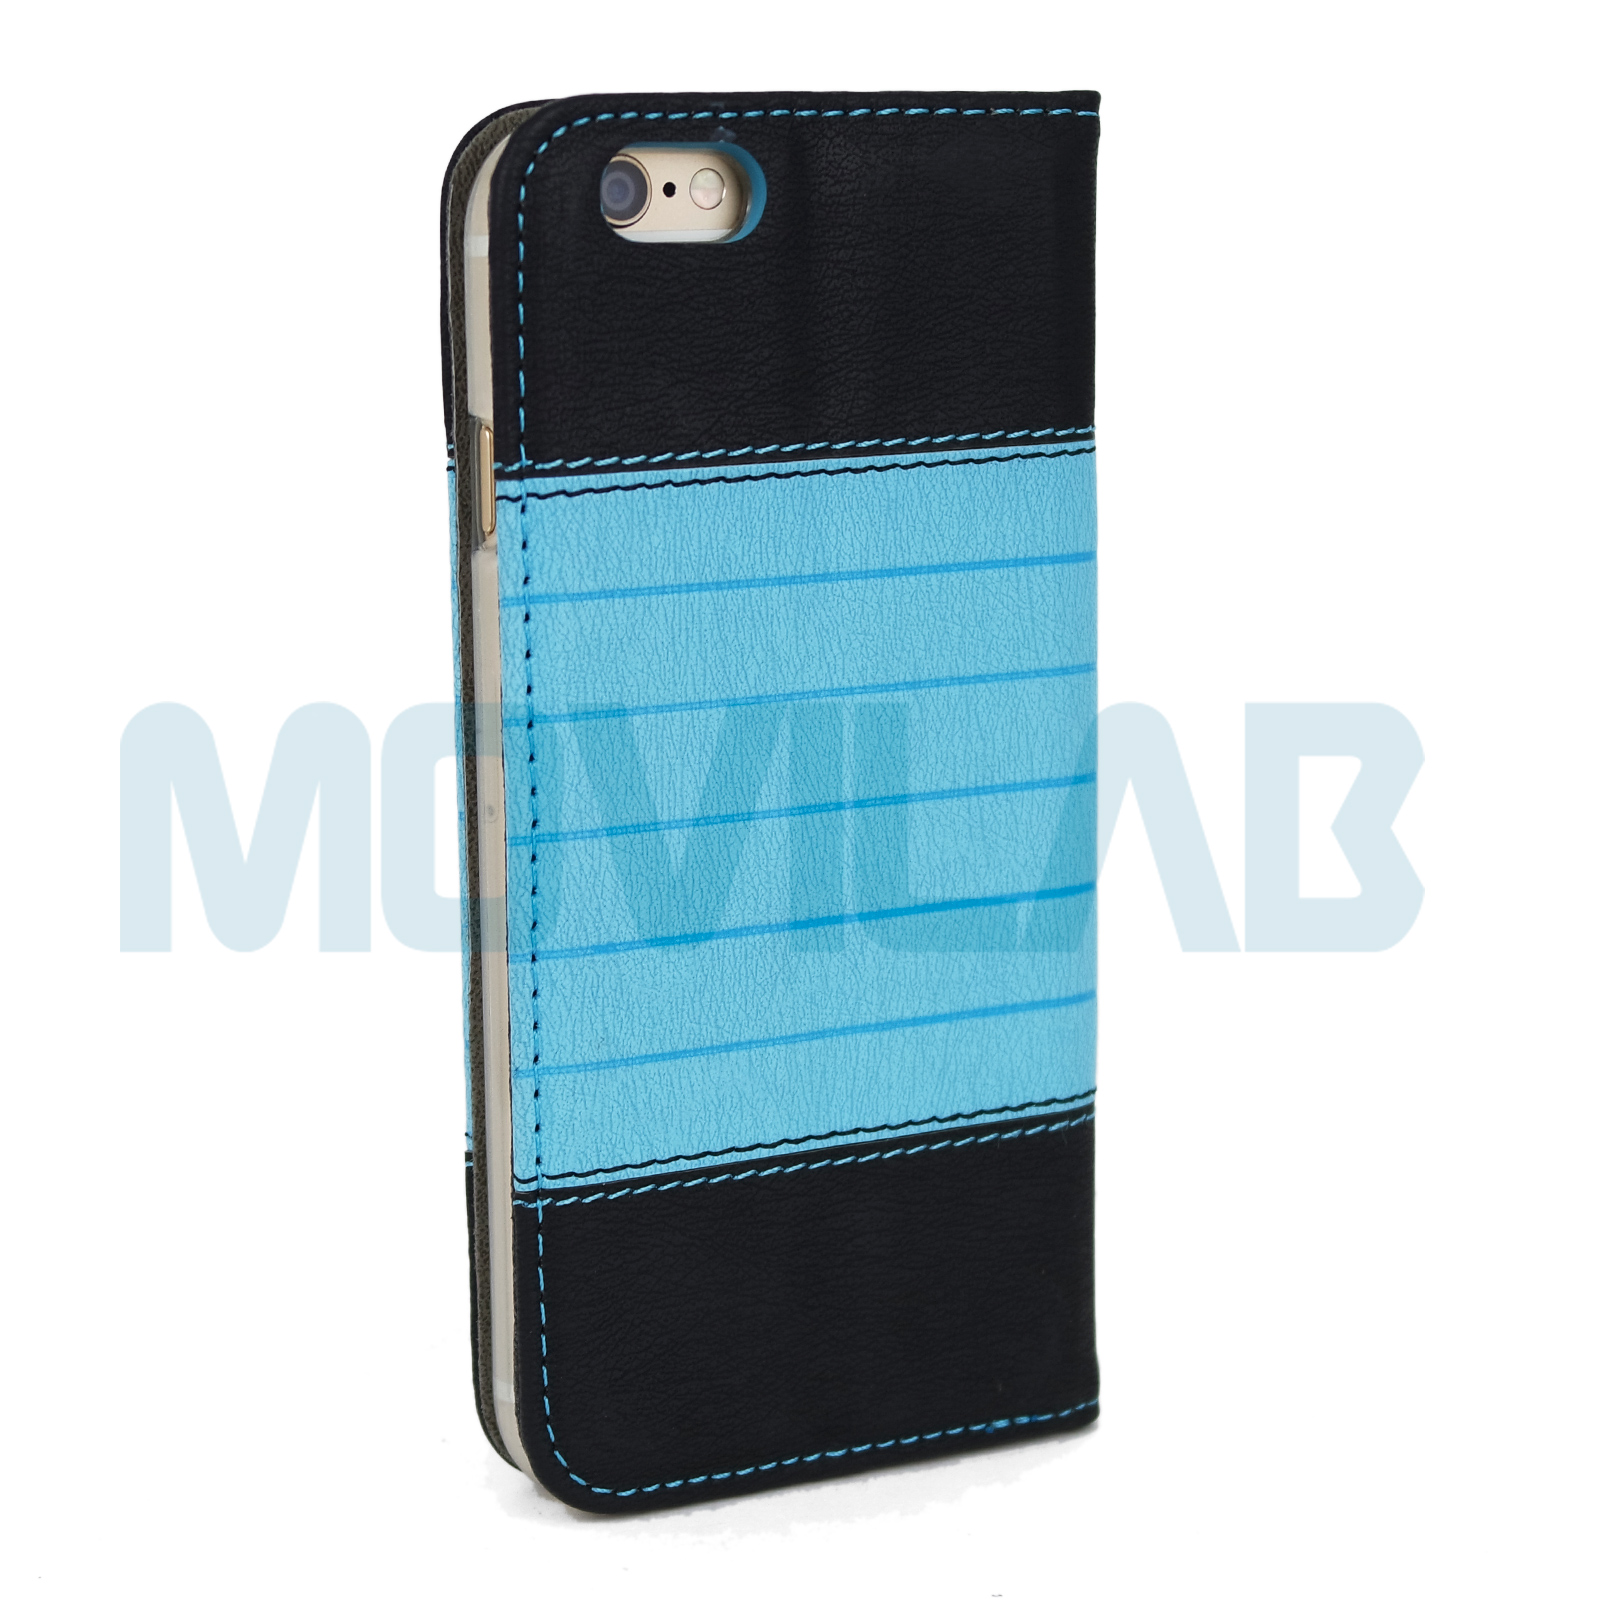 Funda Flip Iphone 6 /6S trasera